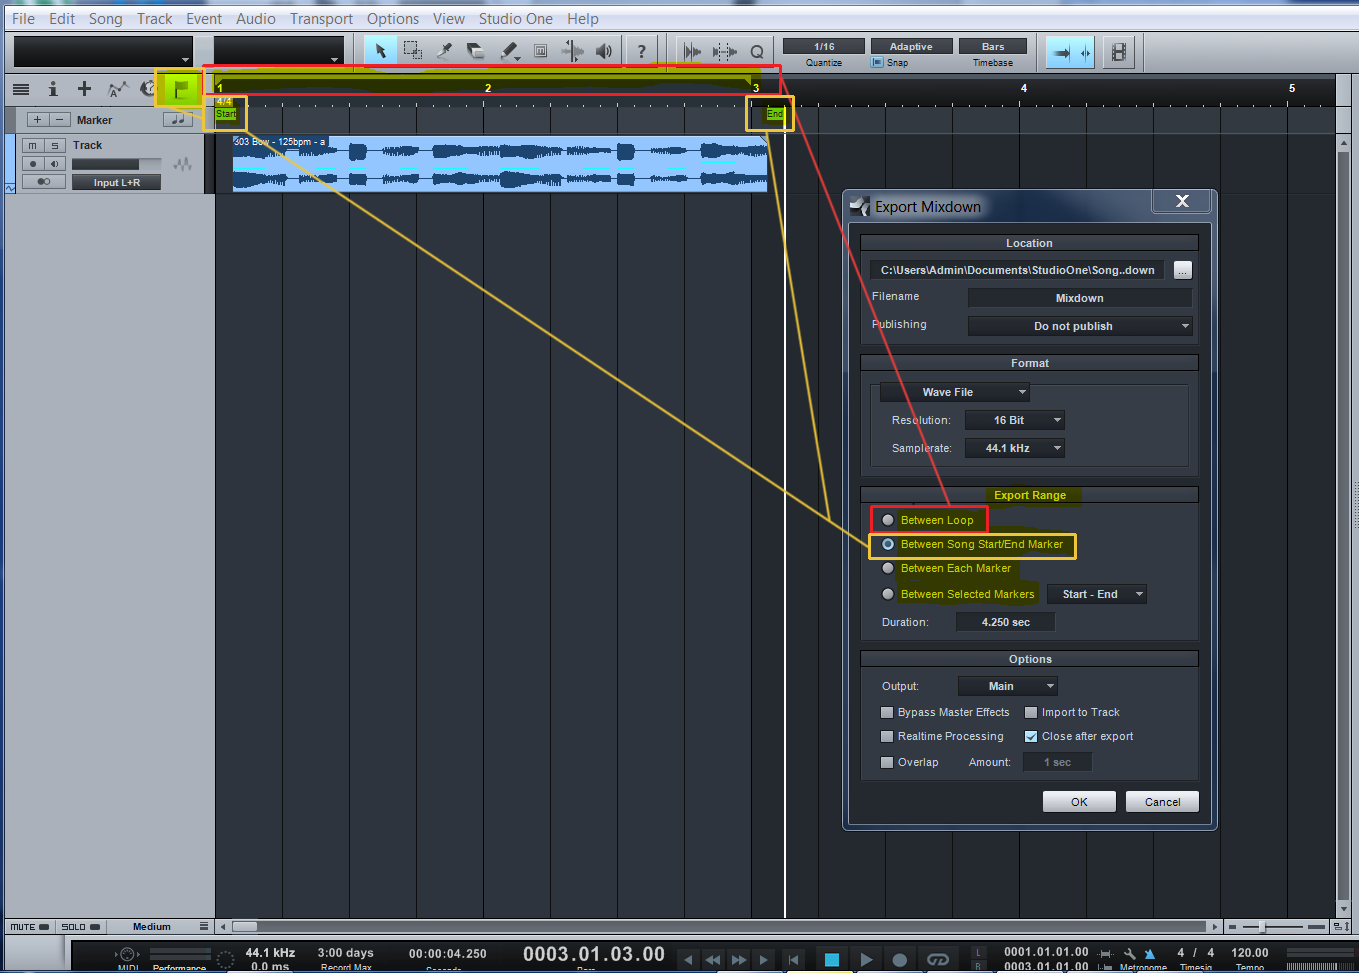 Exporting_Mixdown.PNG